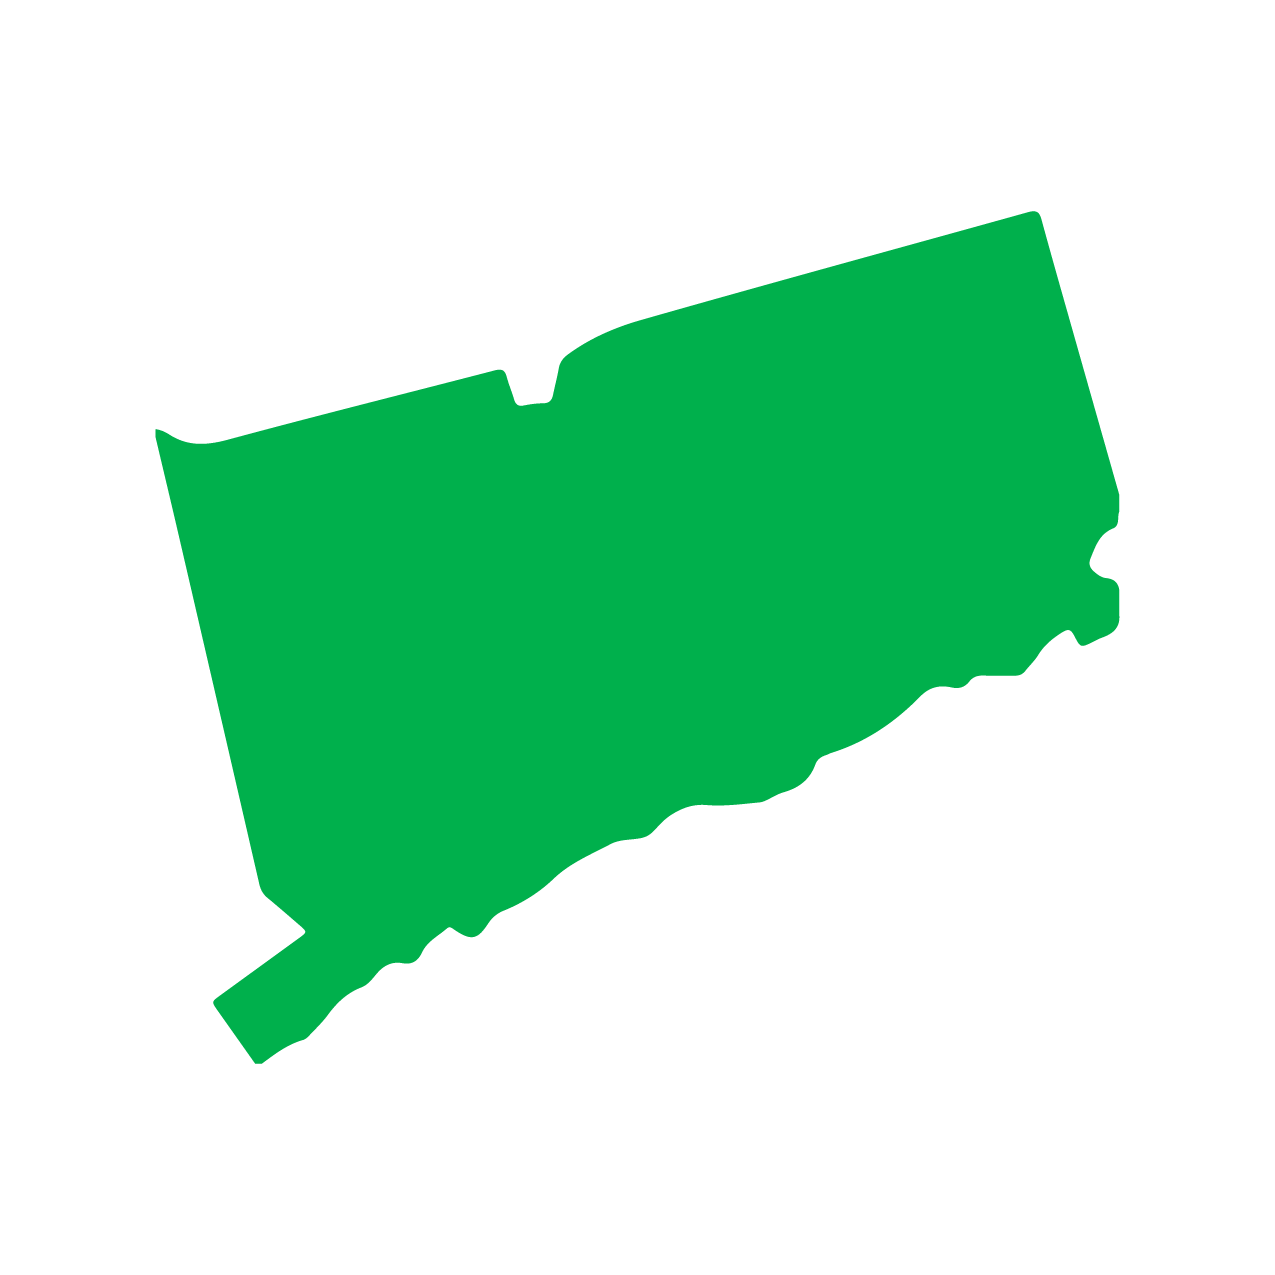 States_Connecticut.png